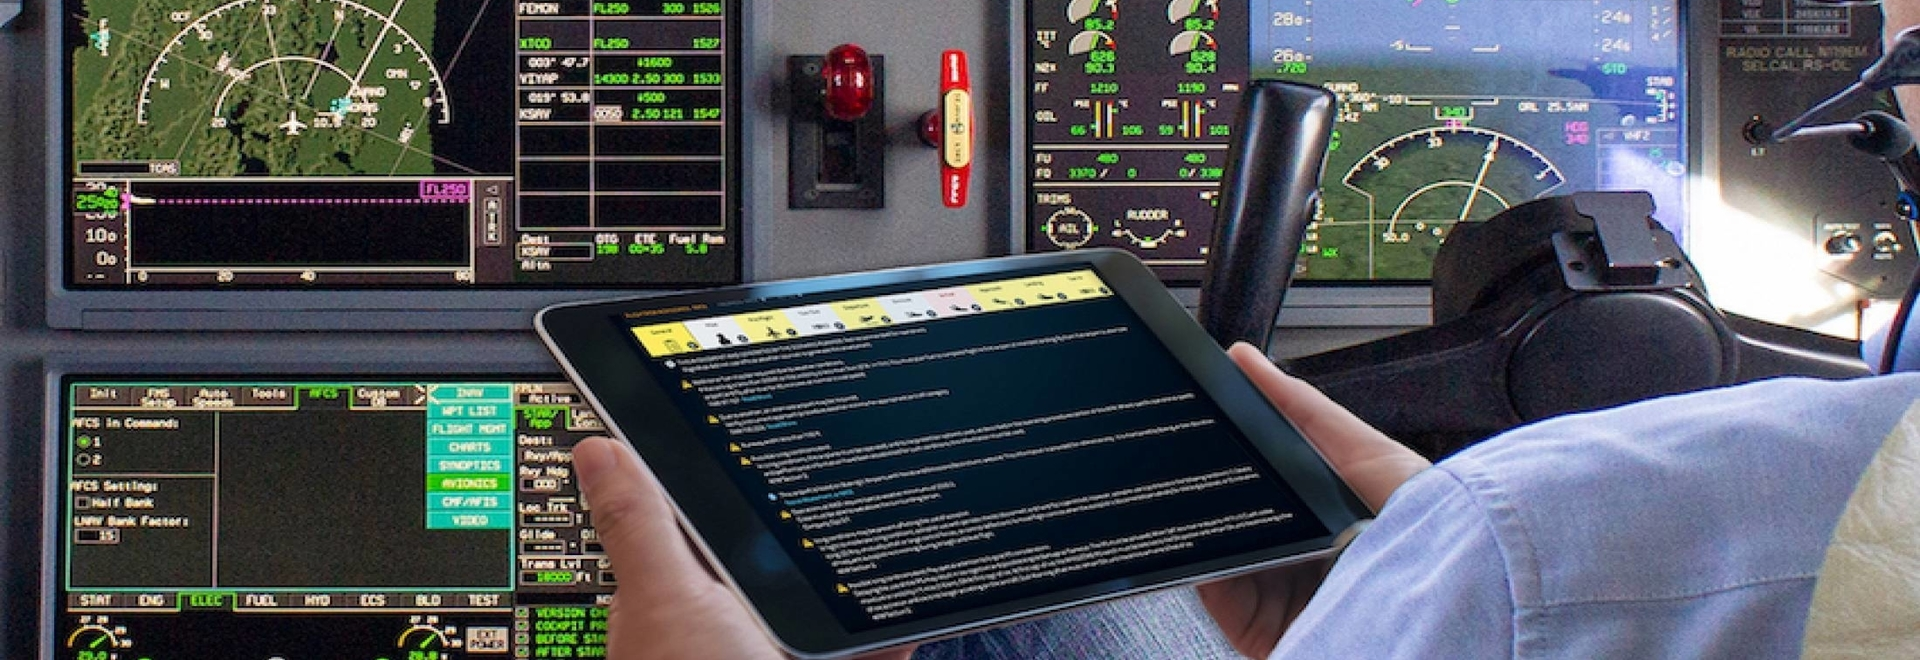 The Polaris Aero FlightRisk app is now integrated with Satcom Direct's SD PreFlight platform.